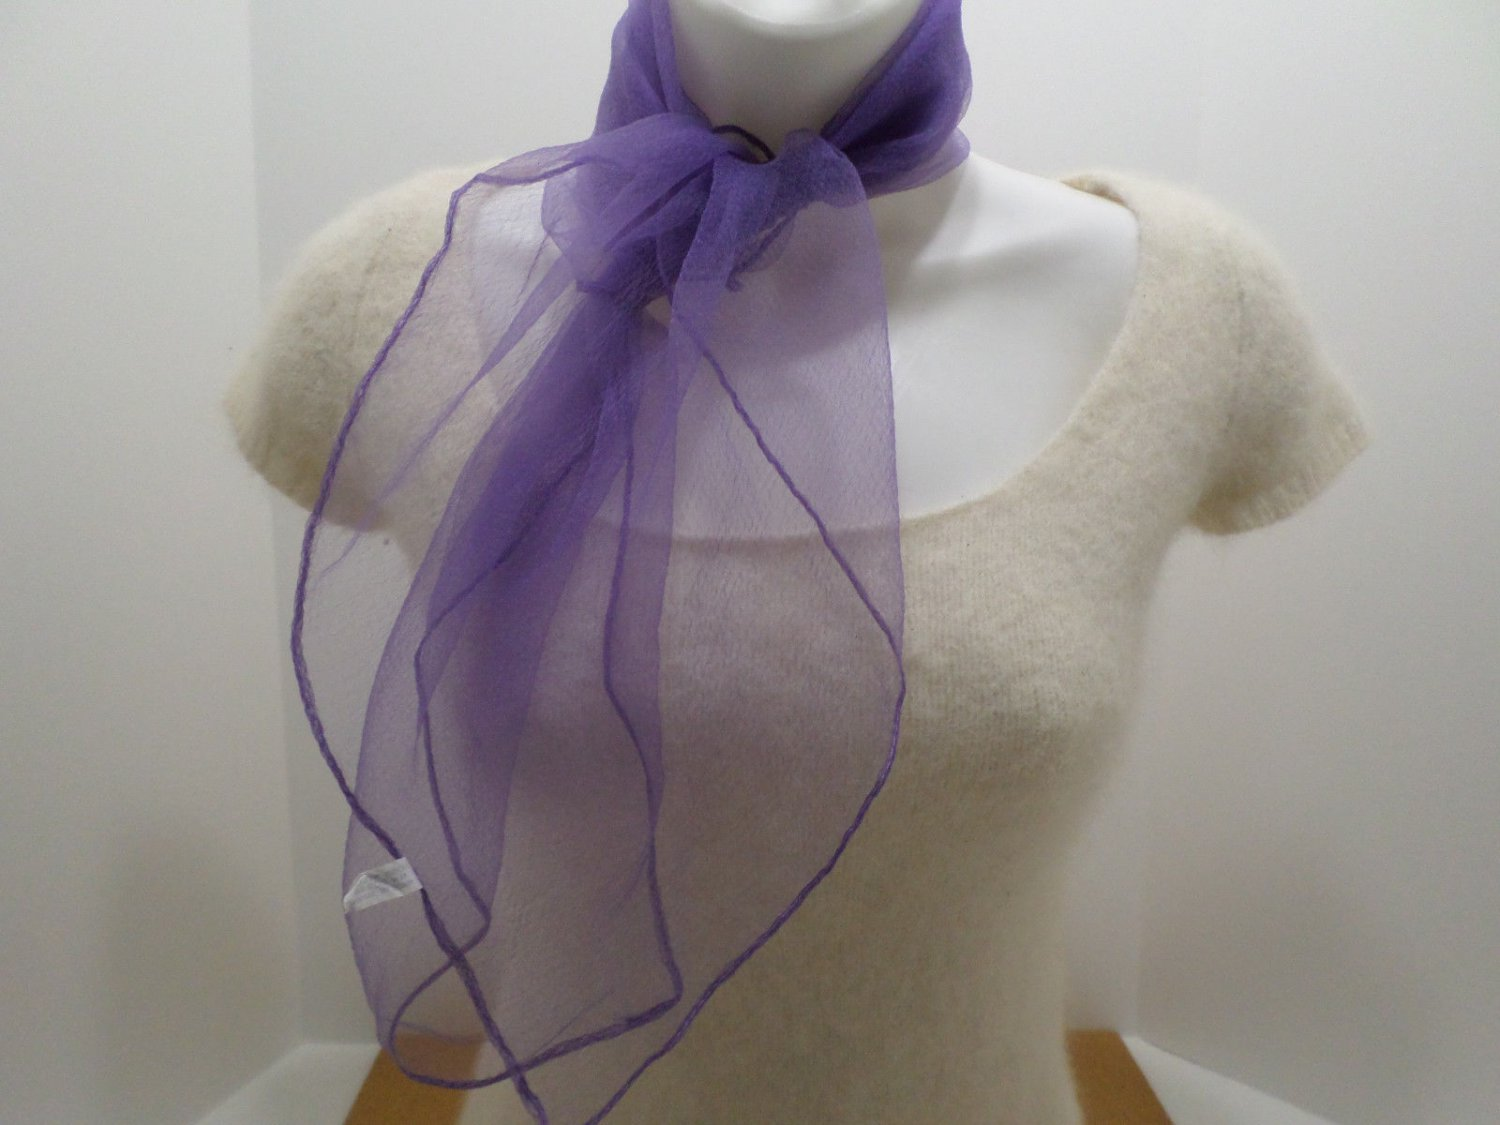 Vintage Purple Scarf 100% Nylon Made in Japan 27 x 28 RN20946